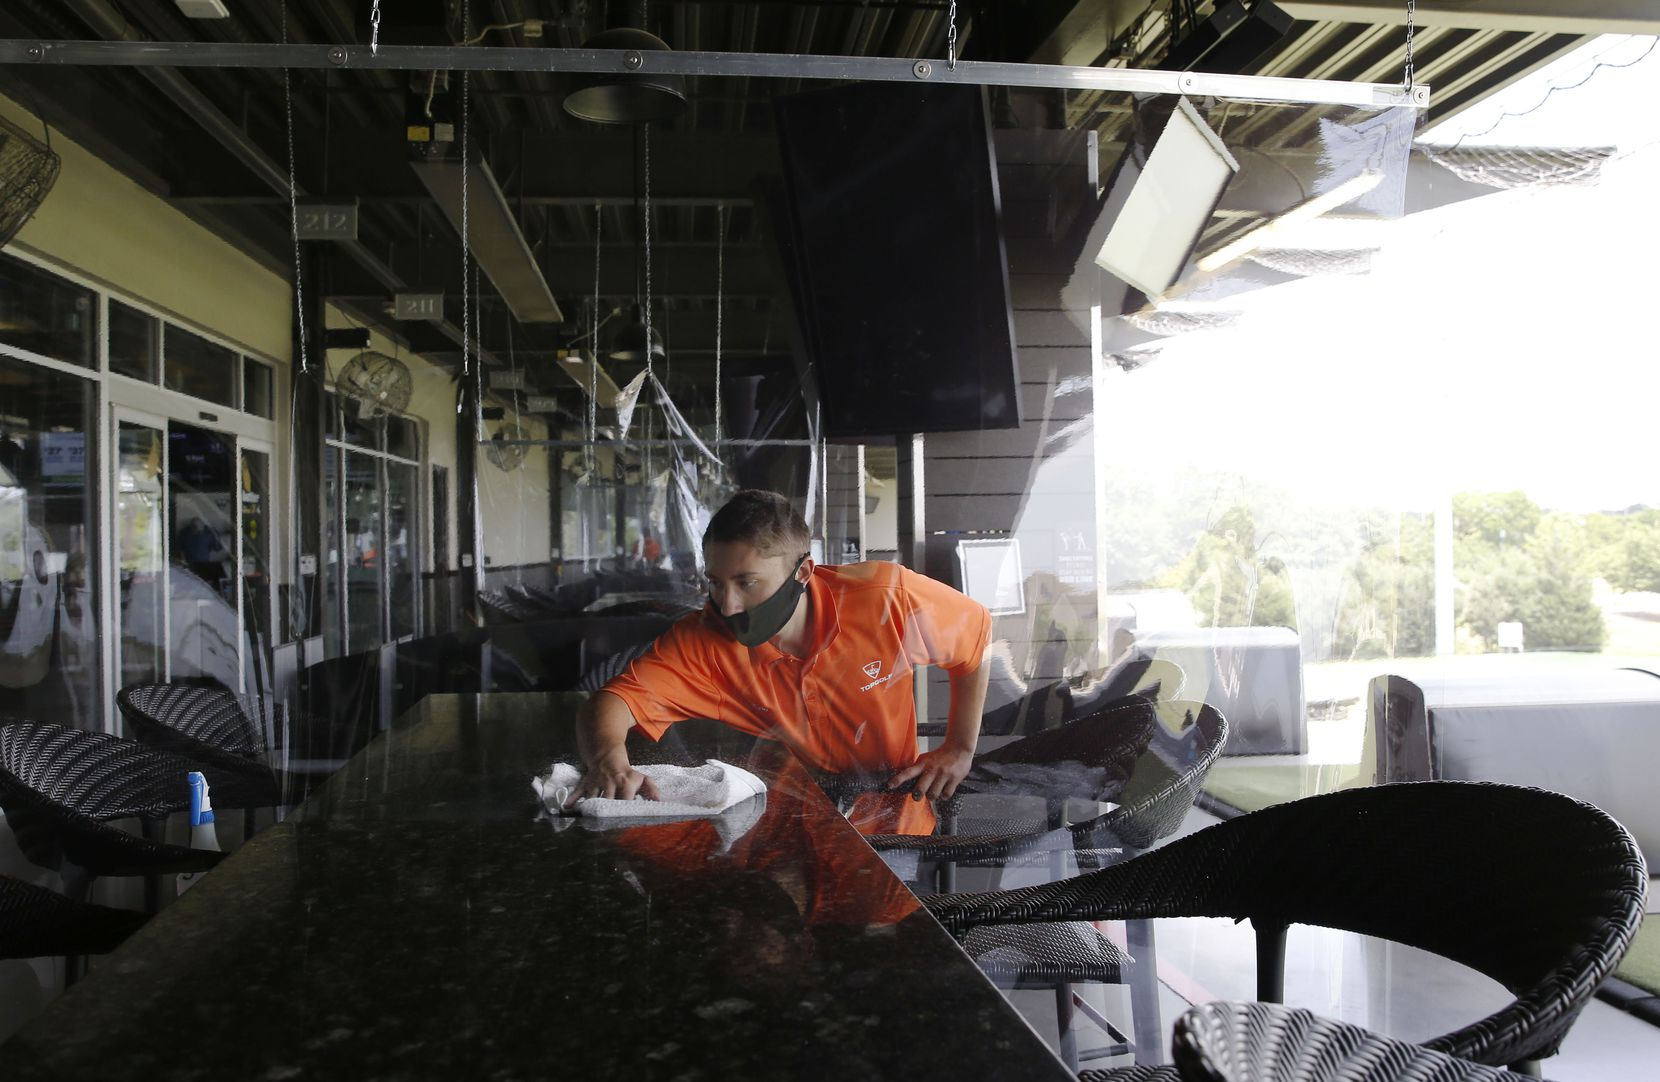 On the other side of a recently installed plastic liner, Kyle Harris cleans tables and seats at Topgolf in The Colony, on Friday, May 22, 2020.